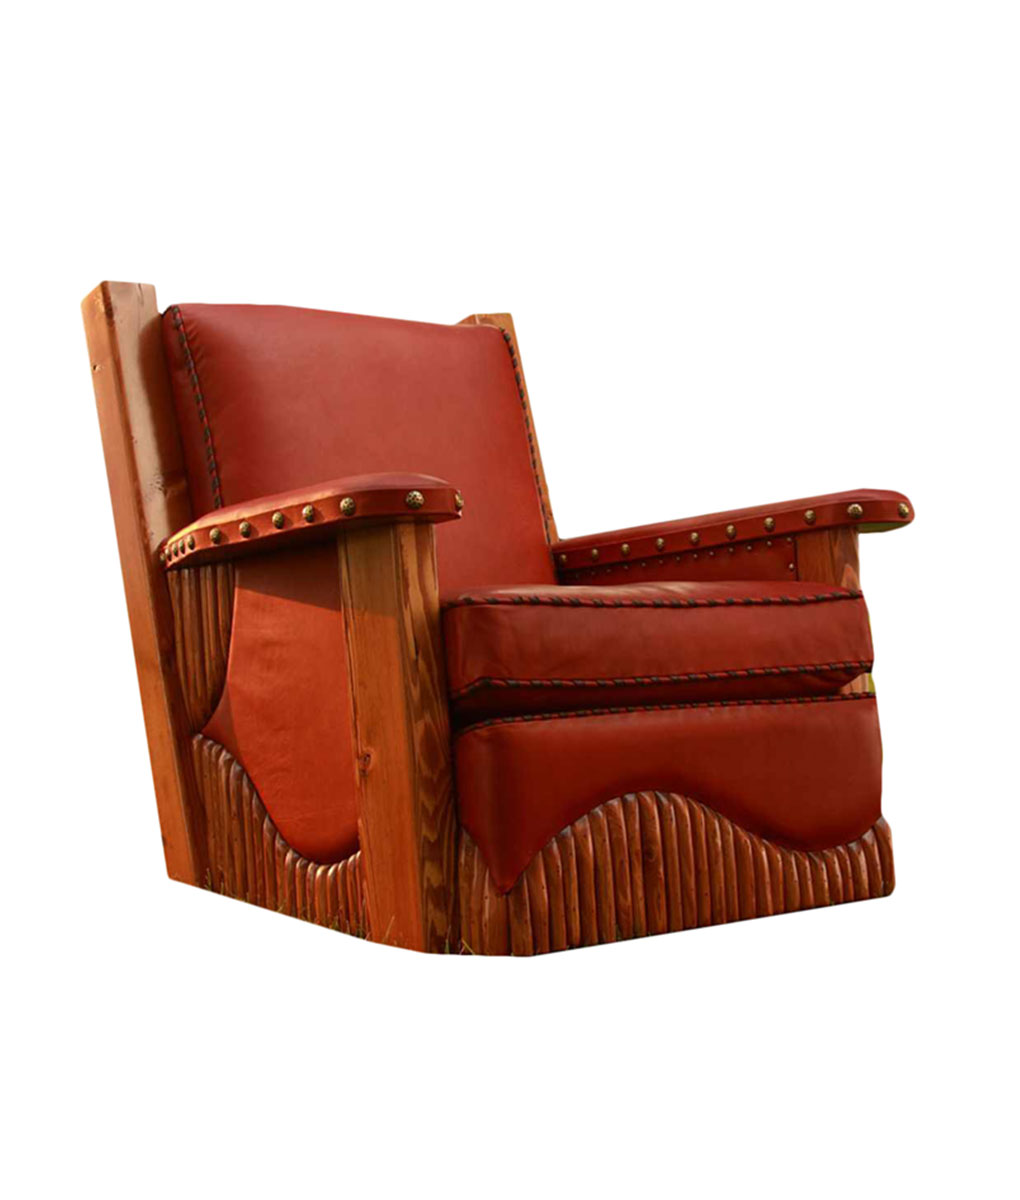 The Mountain Sunset Molesworth Club Chair | Western Seating from Rustic Artistry